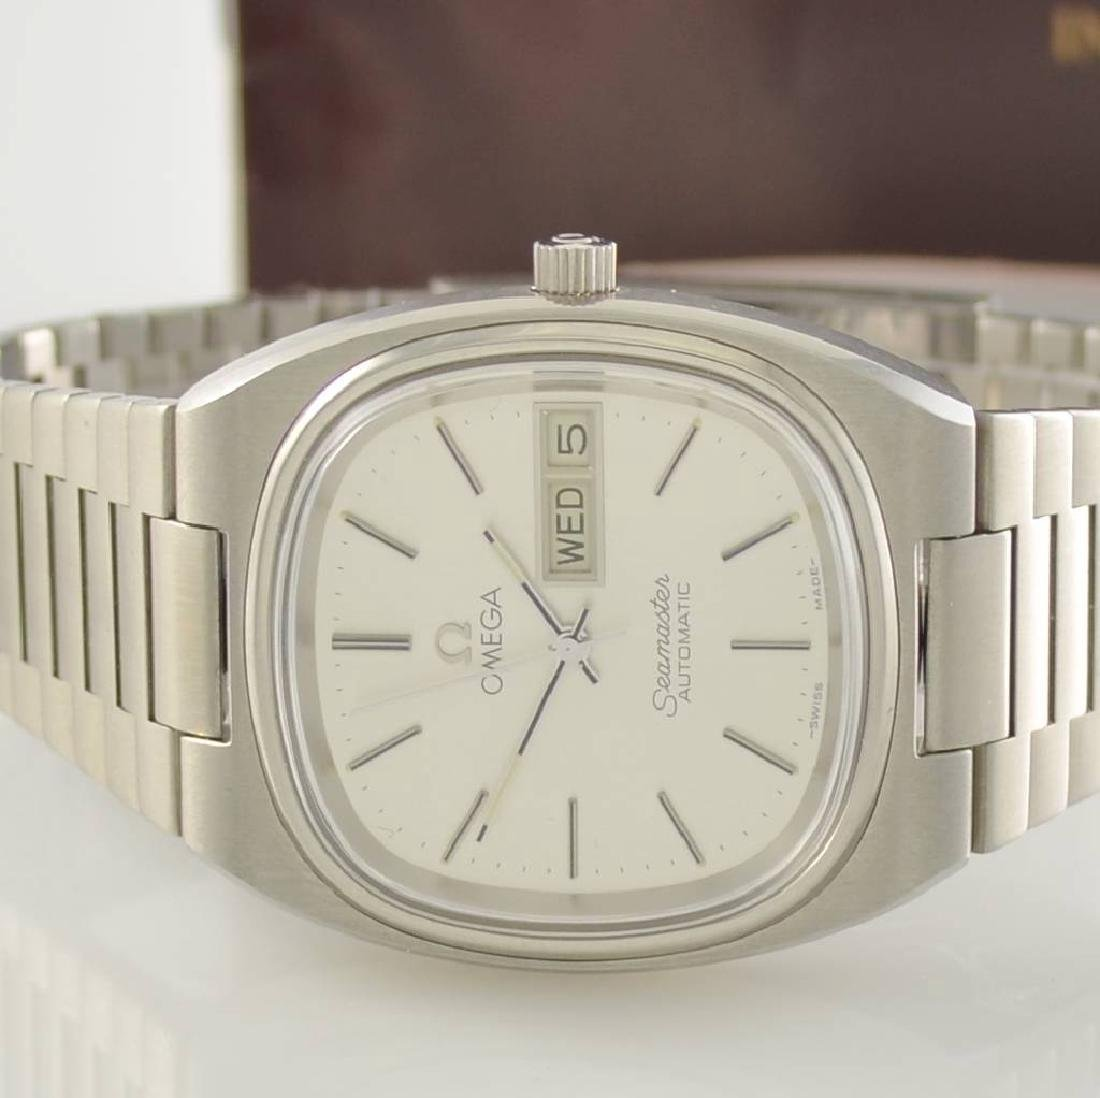 OMEGA Seamaster stainless steel gents wristwatch - 3